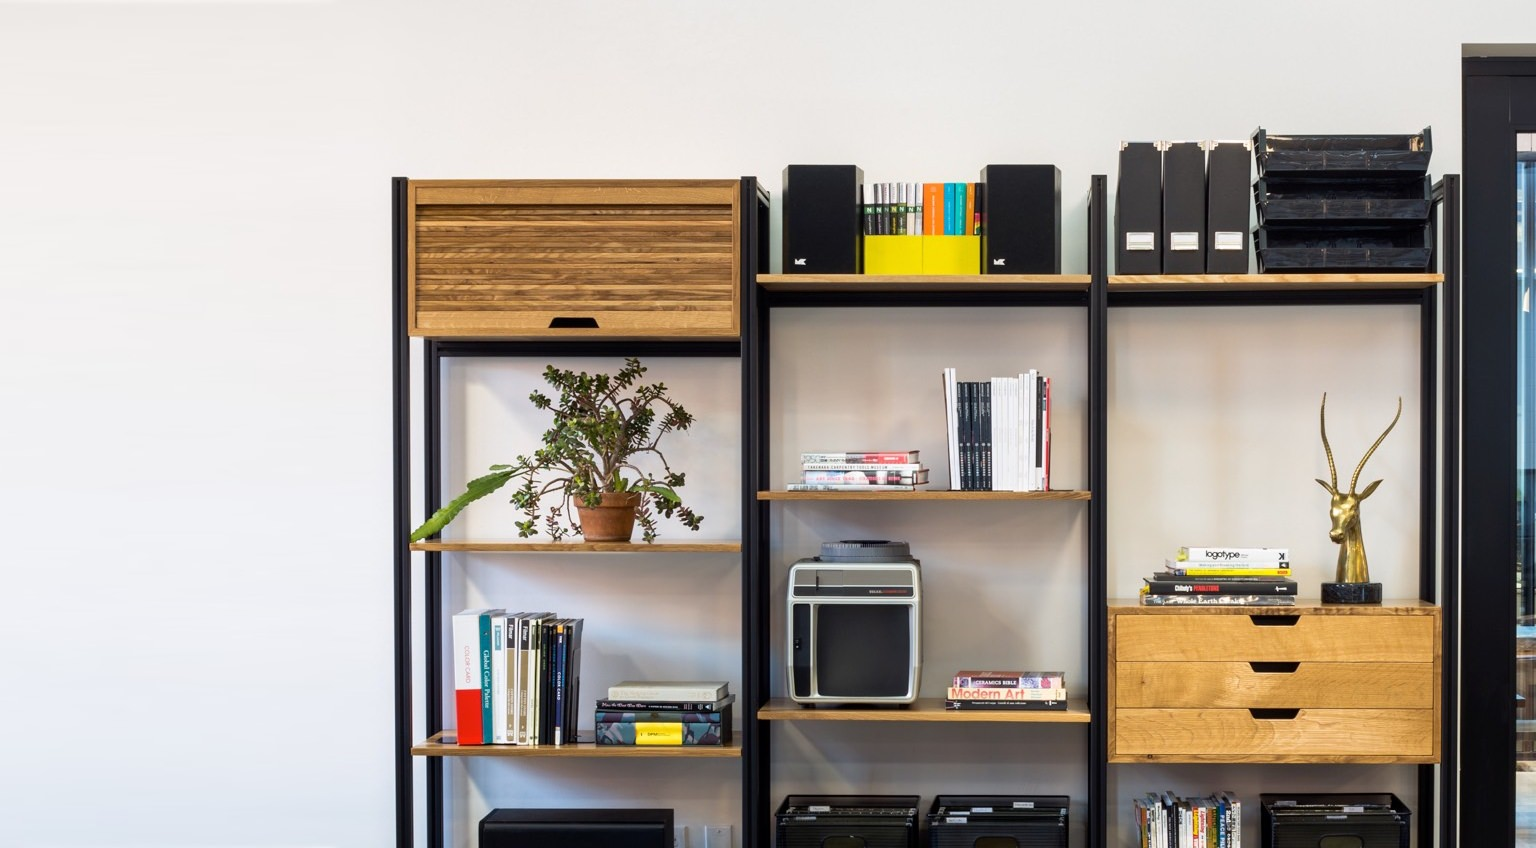 decorating them ideas these storage within great home space create design give need shelves you inspiration the for reach from bookshelf with